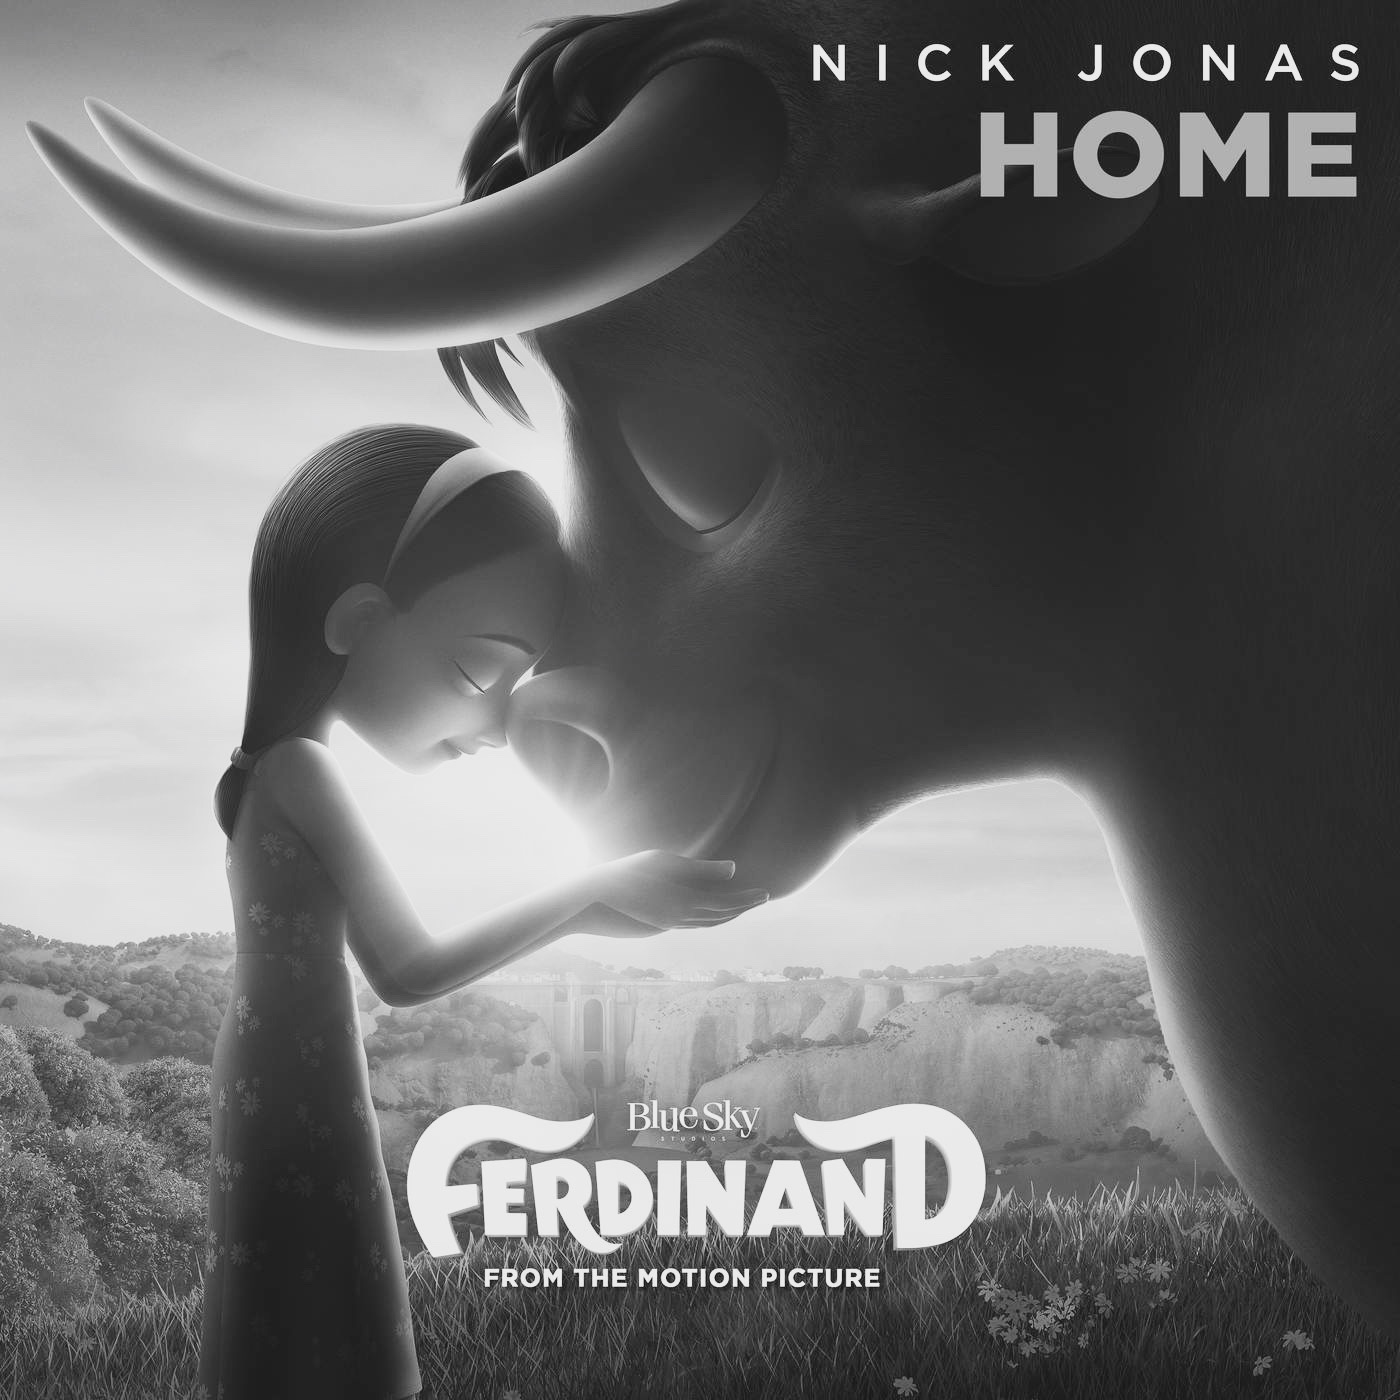 Home-From-the-Motion-Picture-_Ferdinand_-Single.jpg